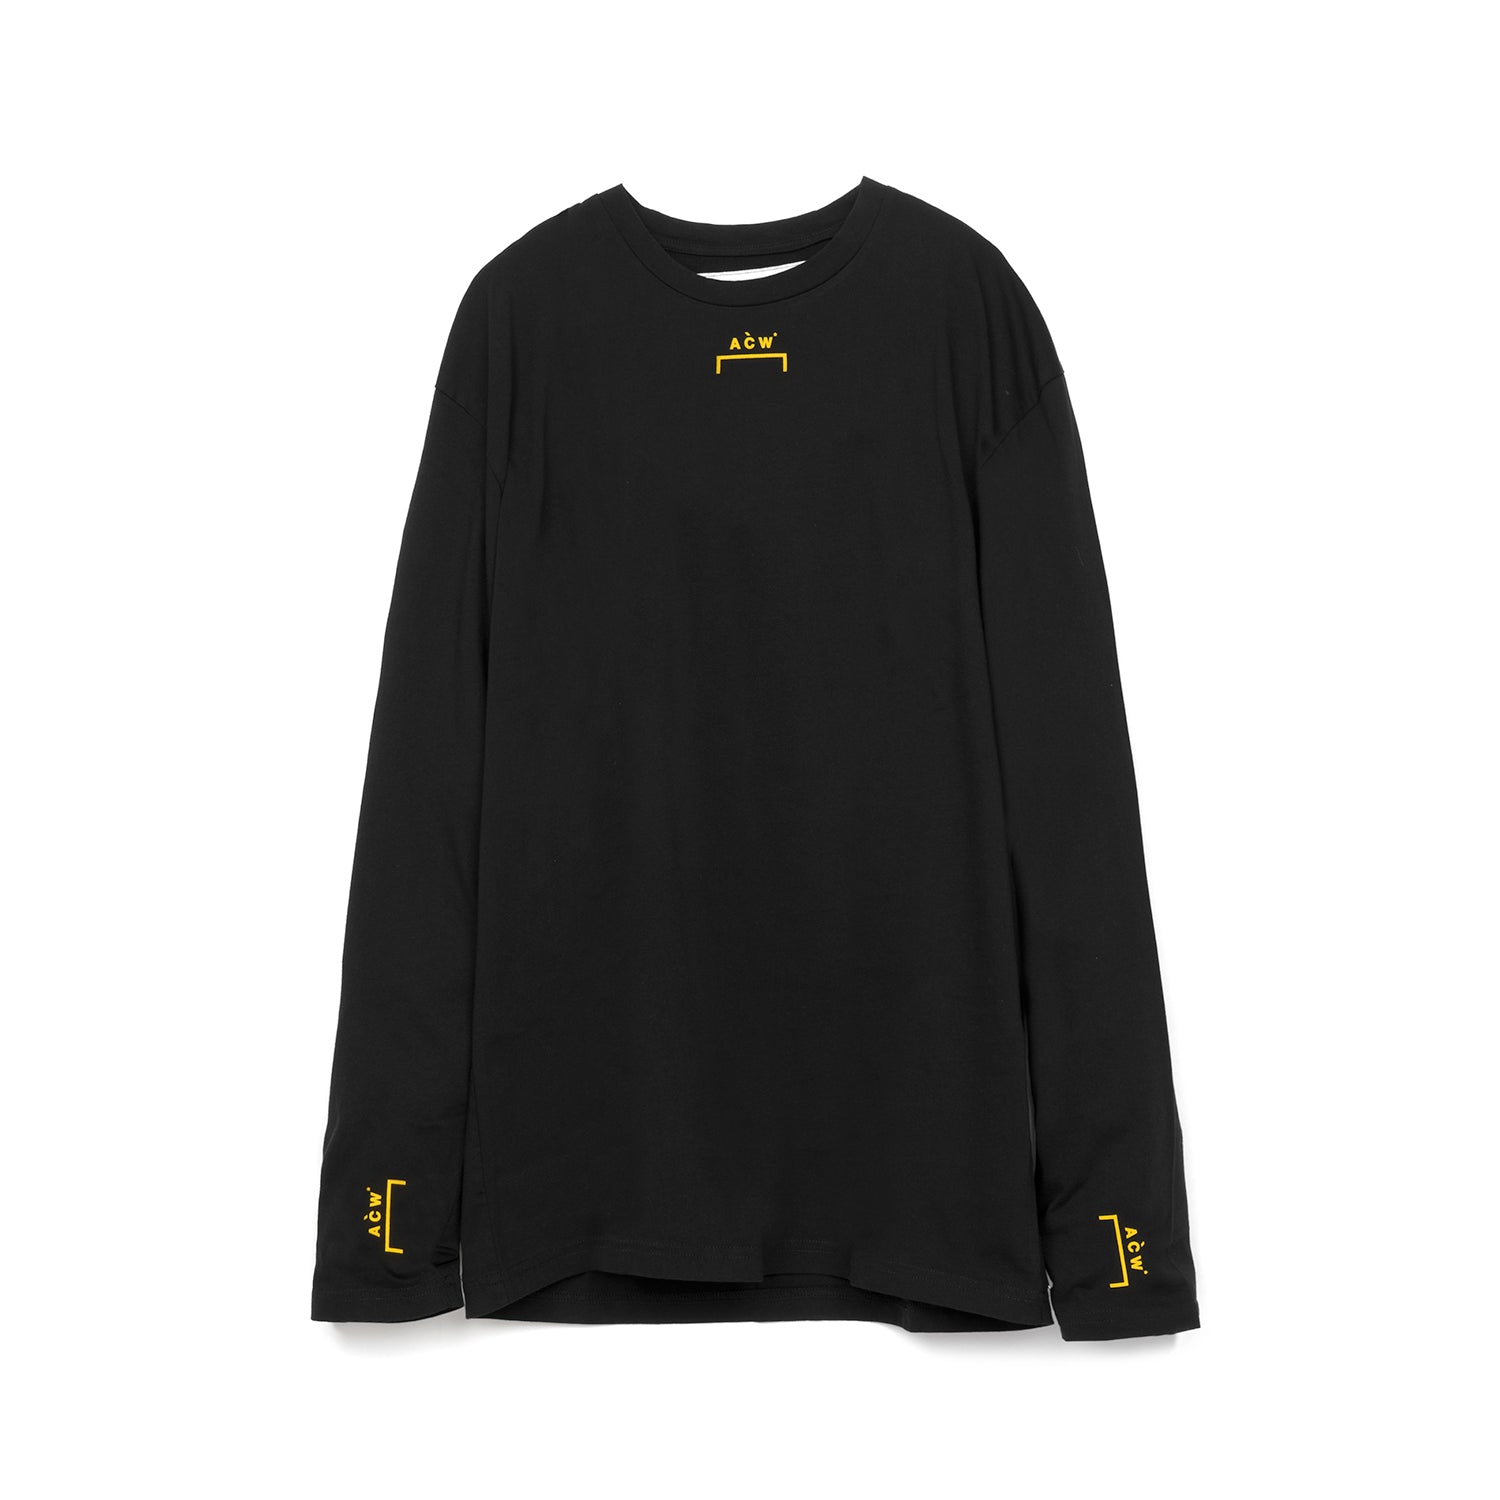 A-COLD-WALL* Bracket Logo L/S w. Back Print T-Shirt Black